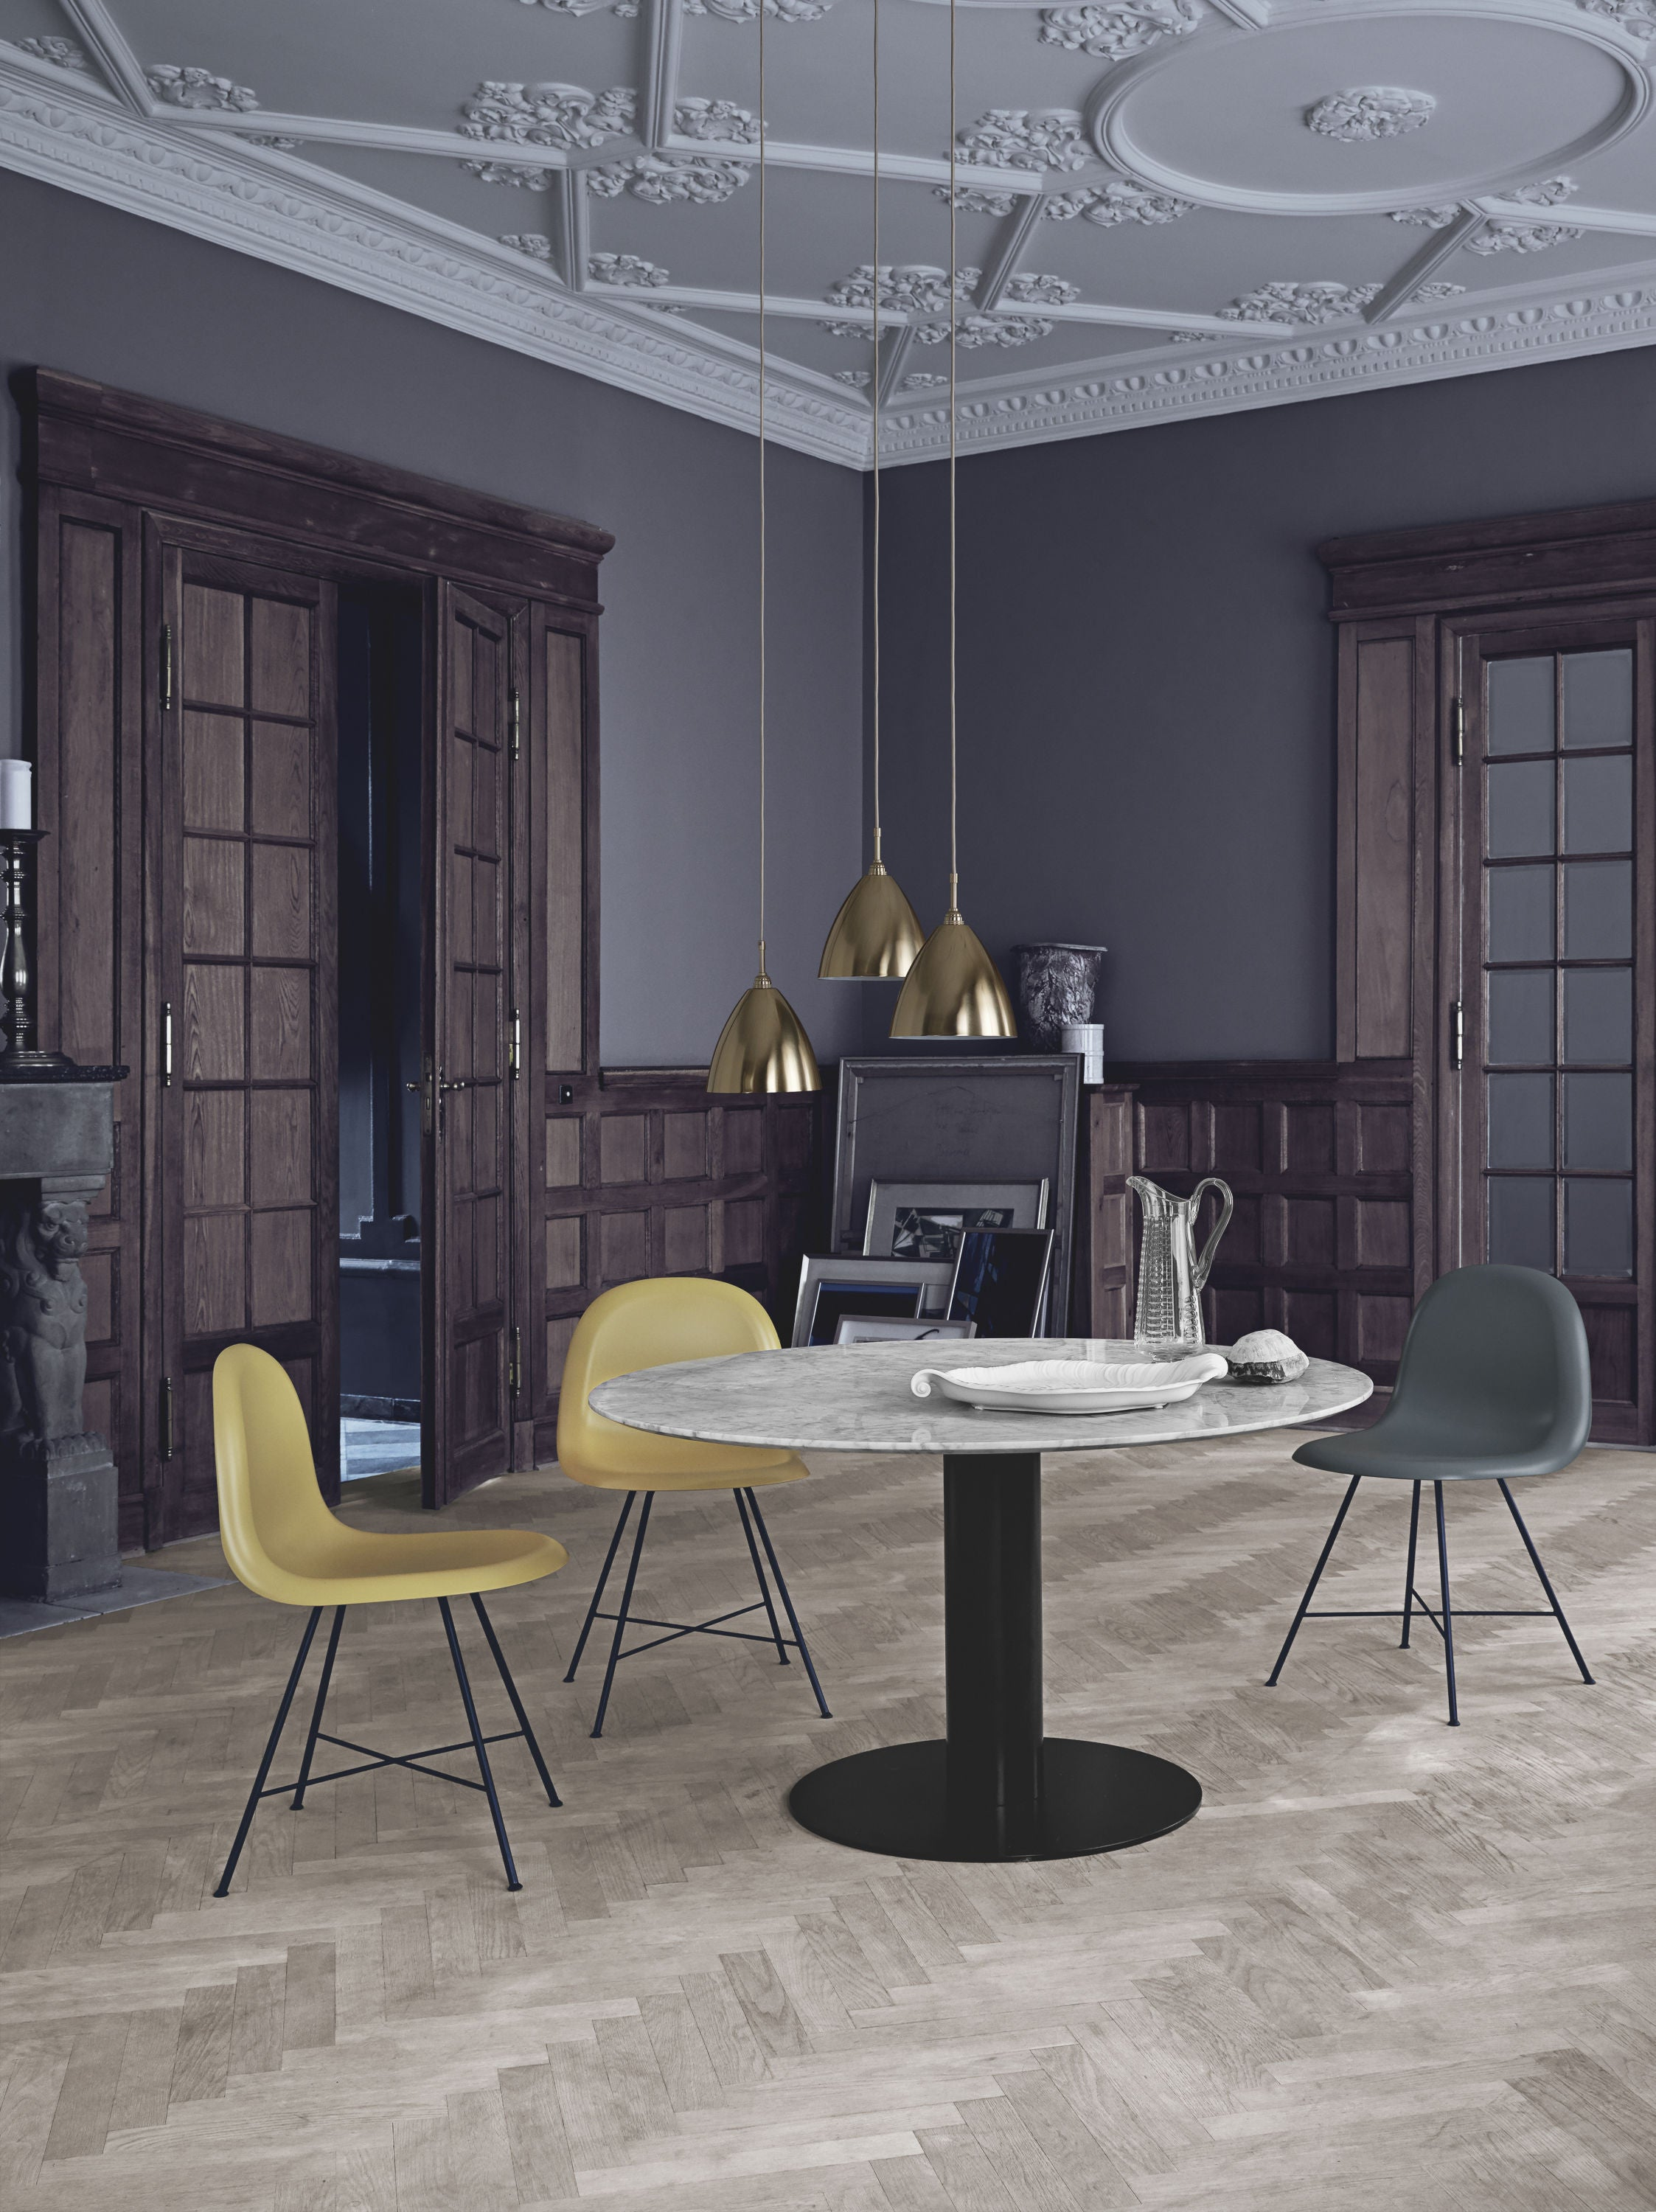 GUBI 2.0 Dining Table - Round - Dia 130 Black Base, Marble Black Top fra GUBI